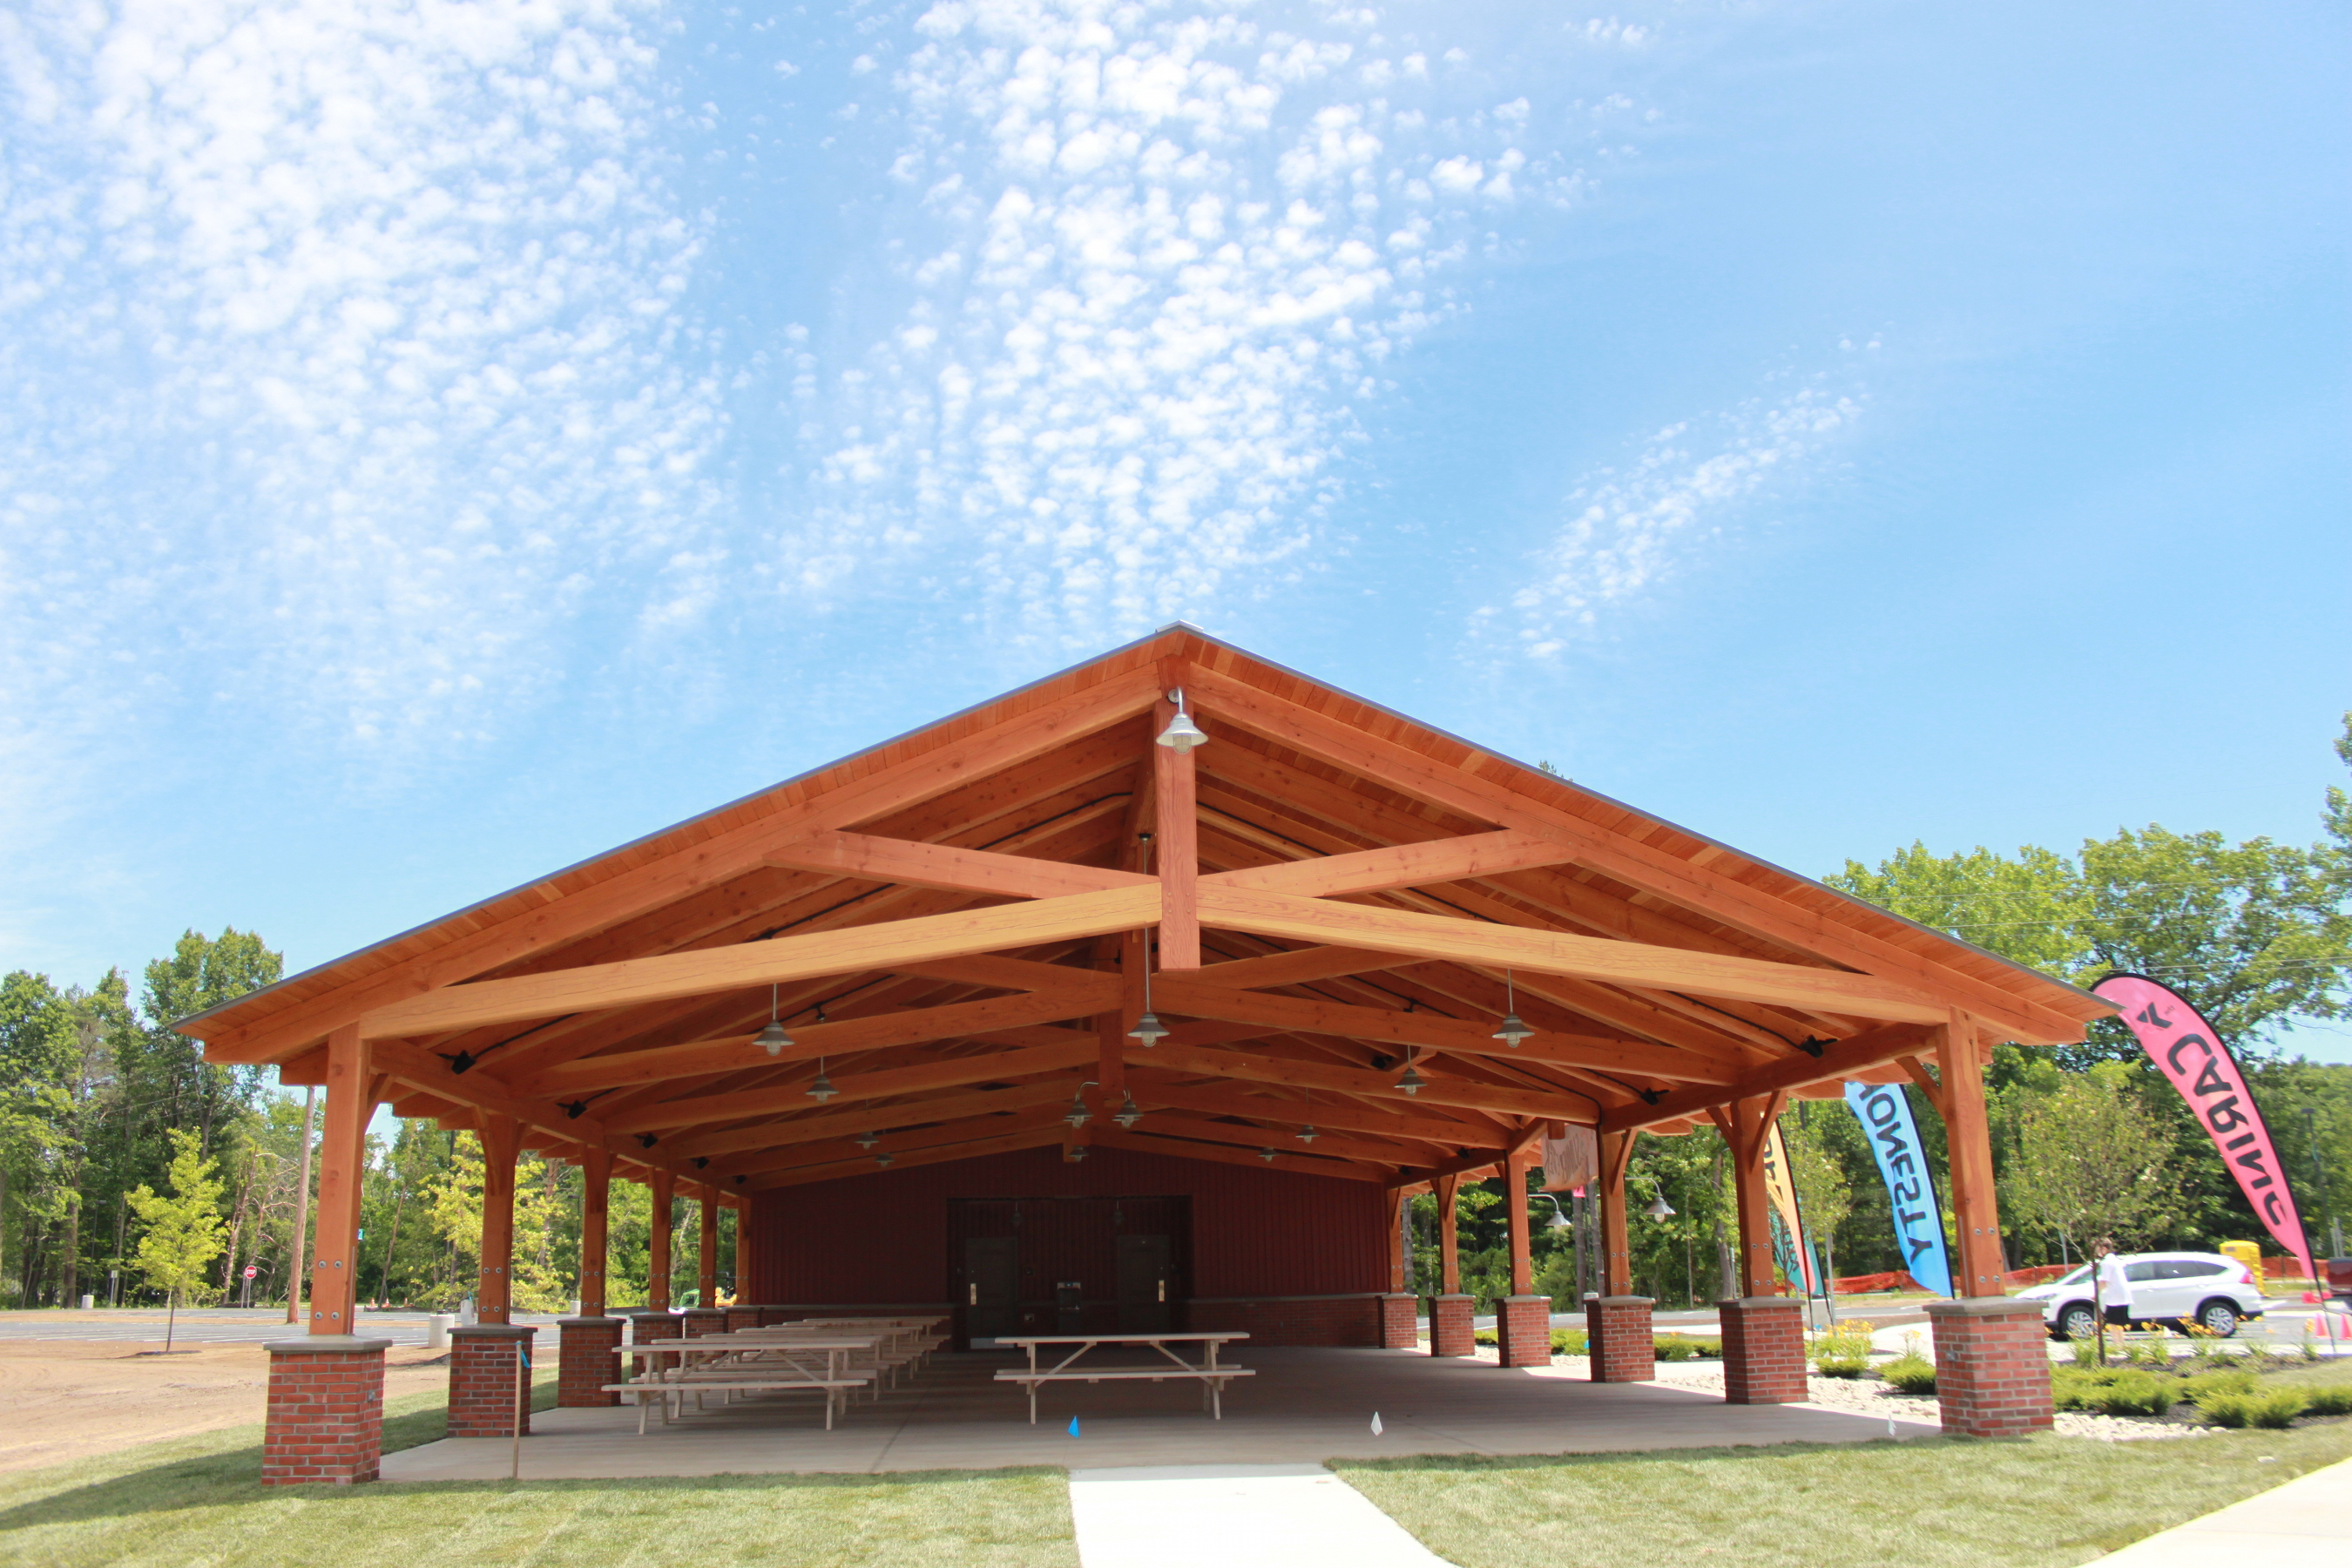 Timber Frame Pavilions Crafted By New Energy Works